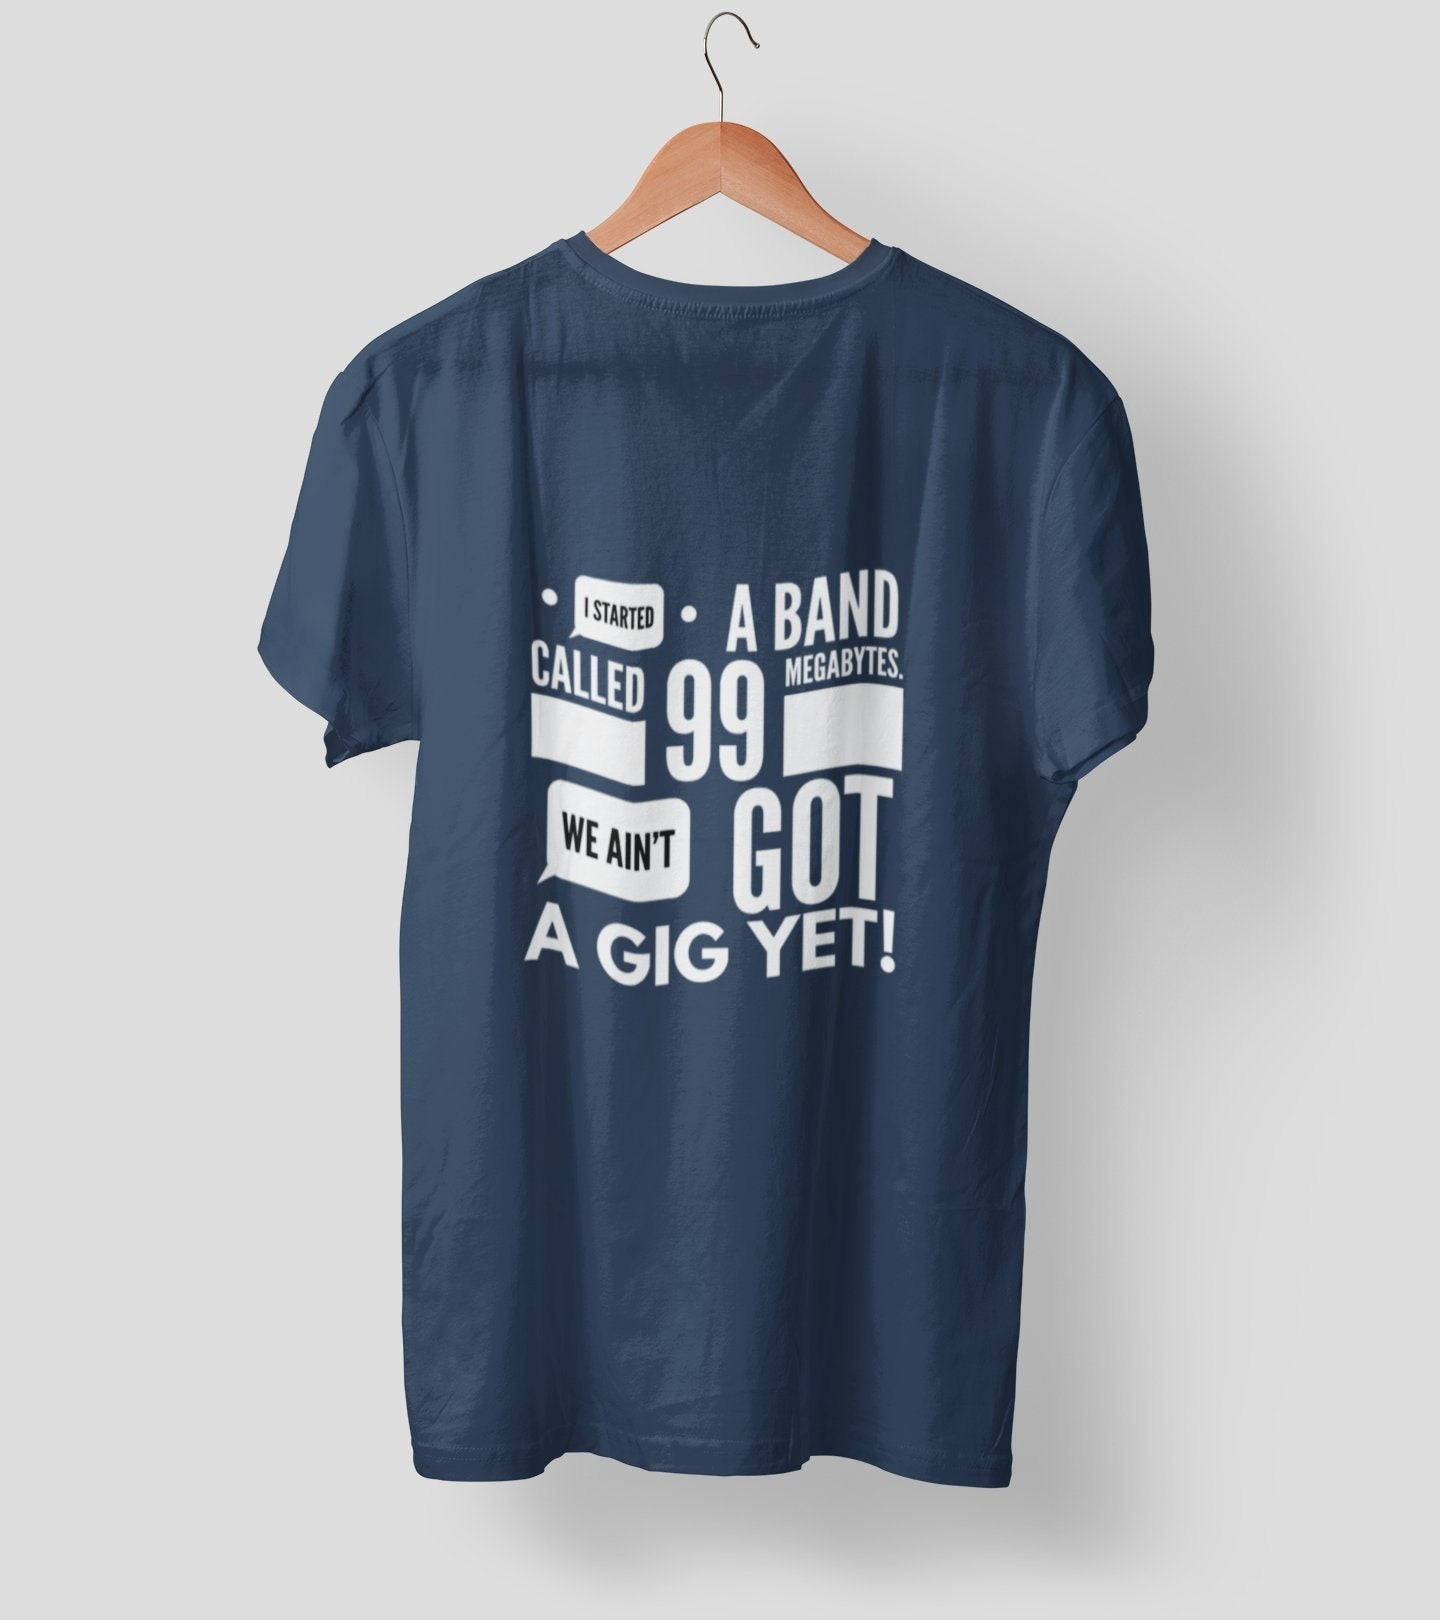 Aint got gig yet 2.0 Clothing Printrove Navy Blue S